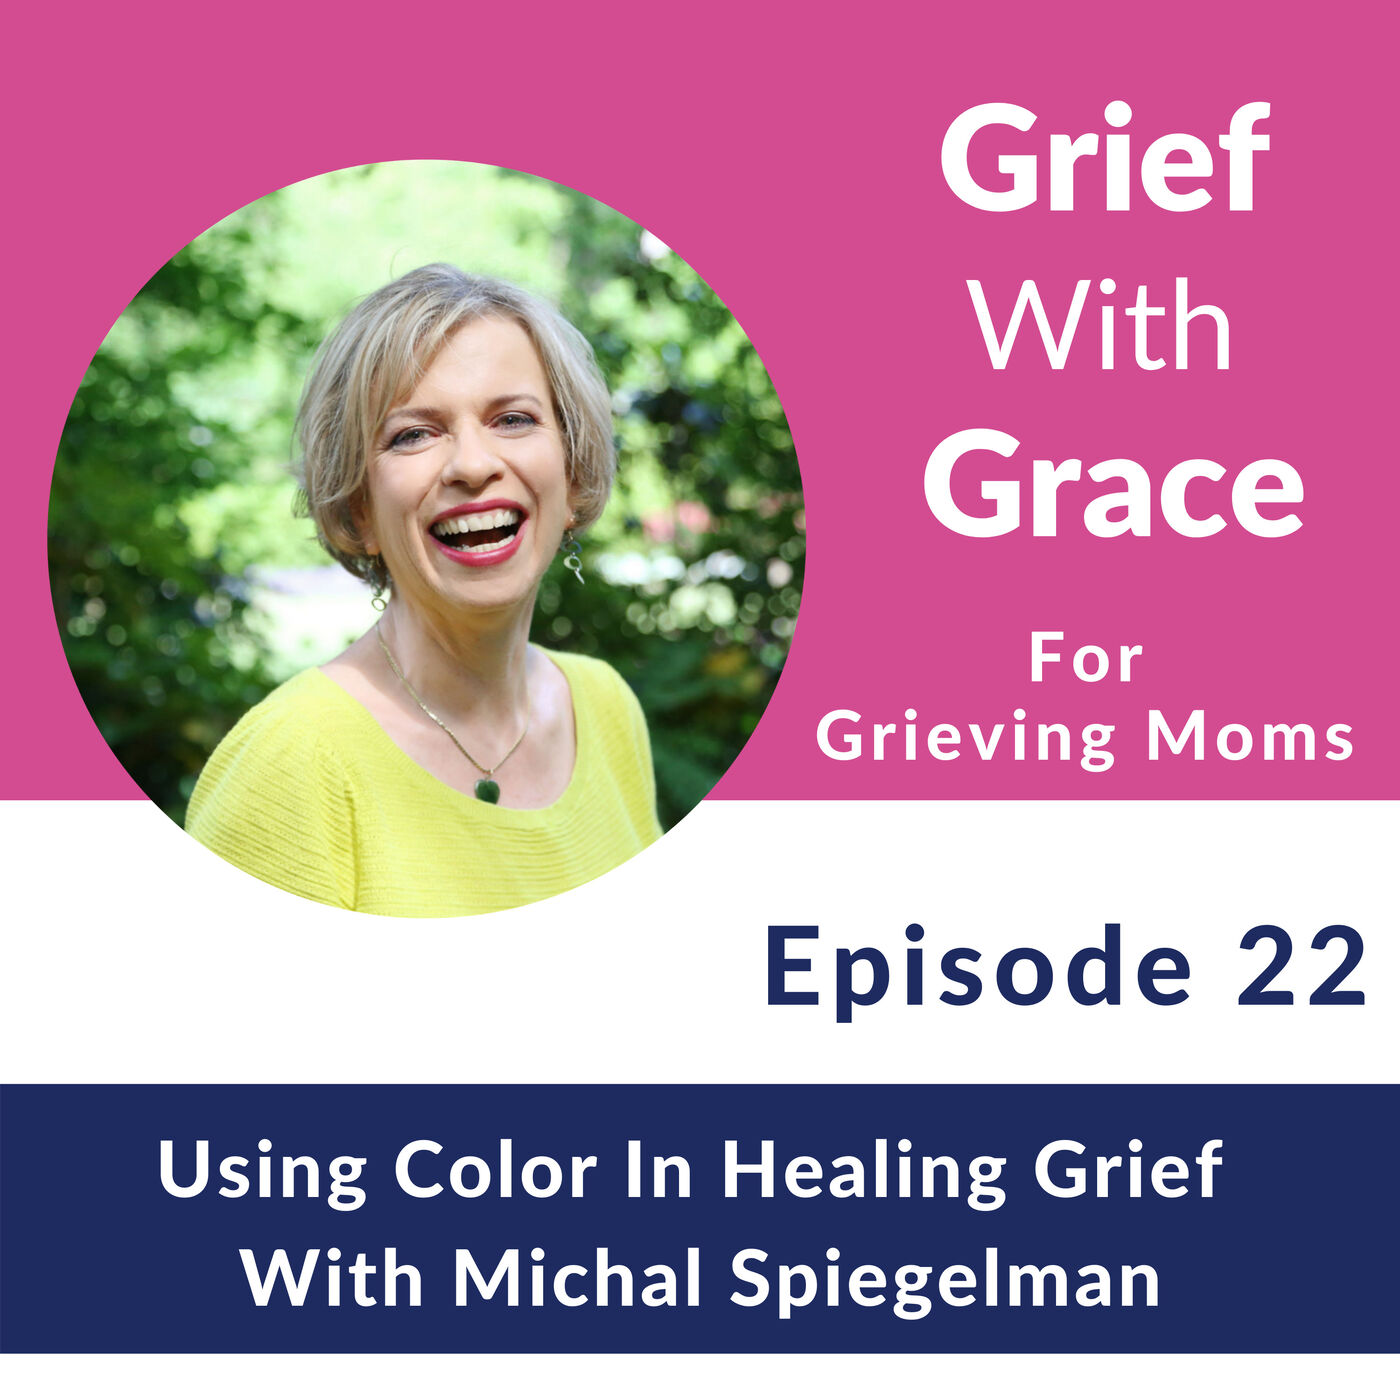 22. Using Color In Healing Grief